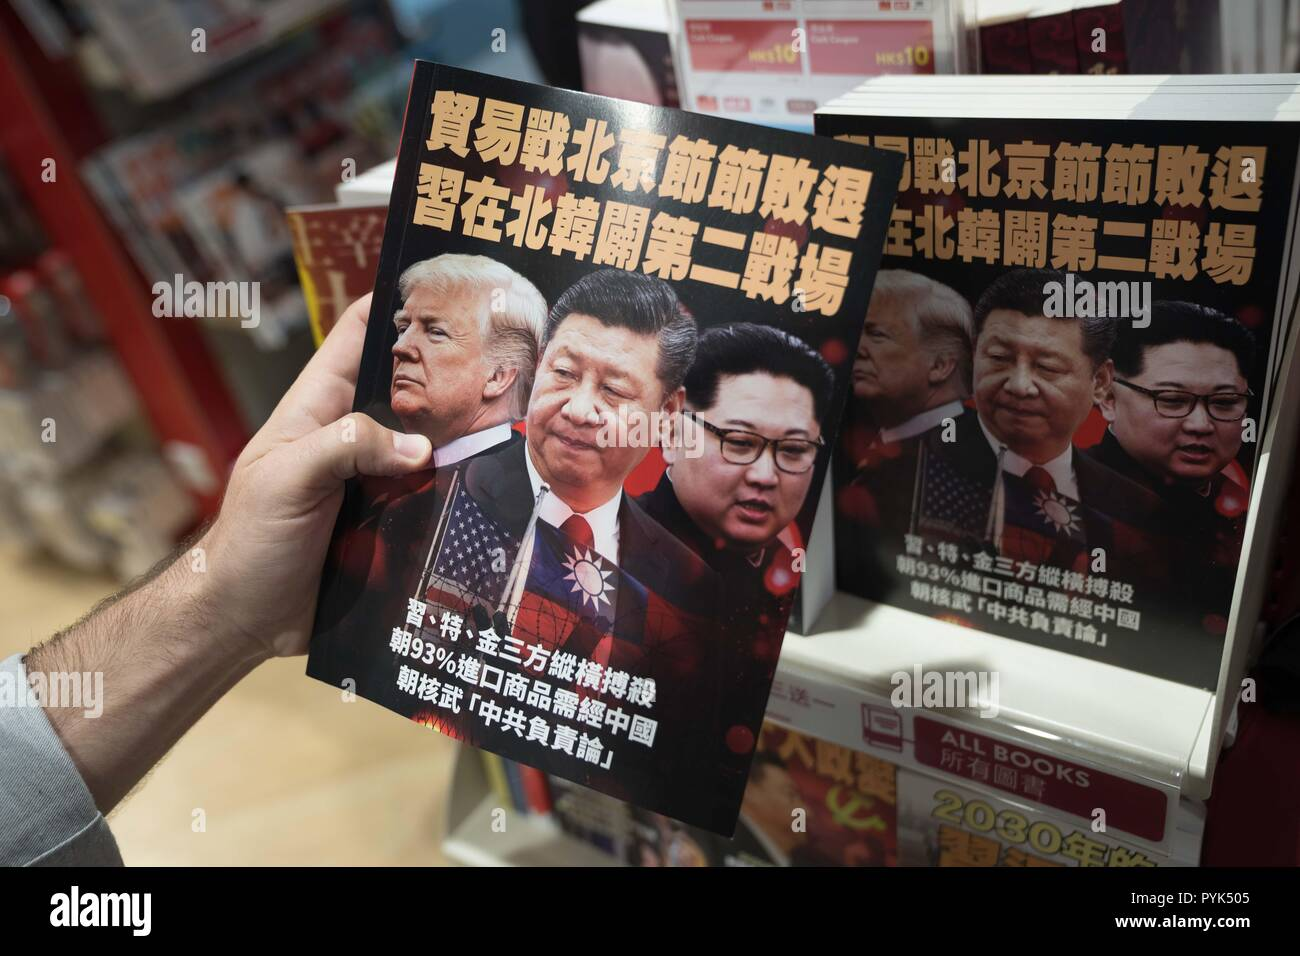 Hong Kong, China. 14th Oct, 2018. A book with US president Donald Trump, Chinese leader Xi Jinping and the North Korean leader Kim Jung Un as the front cover seen on sale in a book shop in Hong Kong airport. Credit: Geovien So/SOPA Images/ZUMA Wire/Alamy Live News - Stock Image